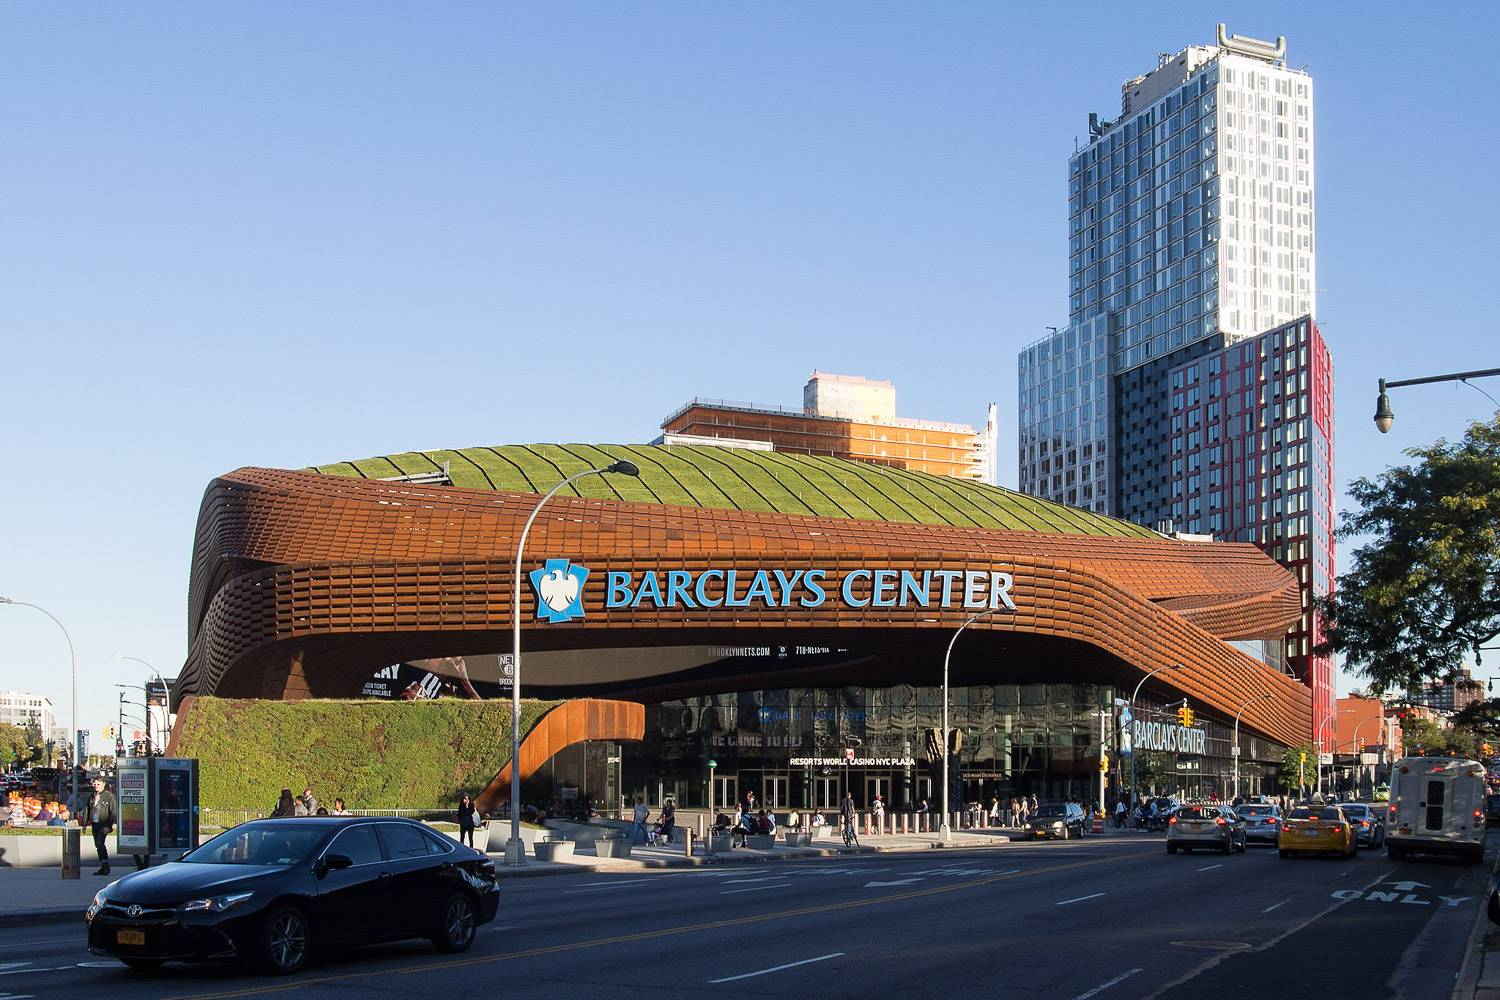 Image of Barclays Center in Brooklyn with a green roof covered in low plants